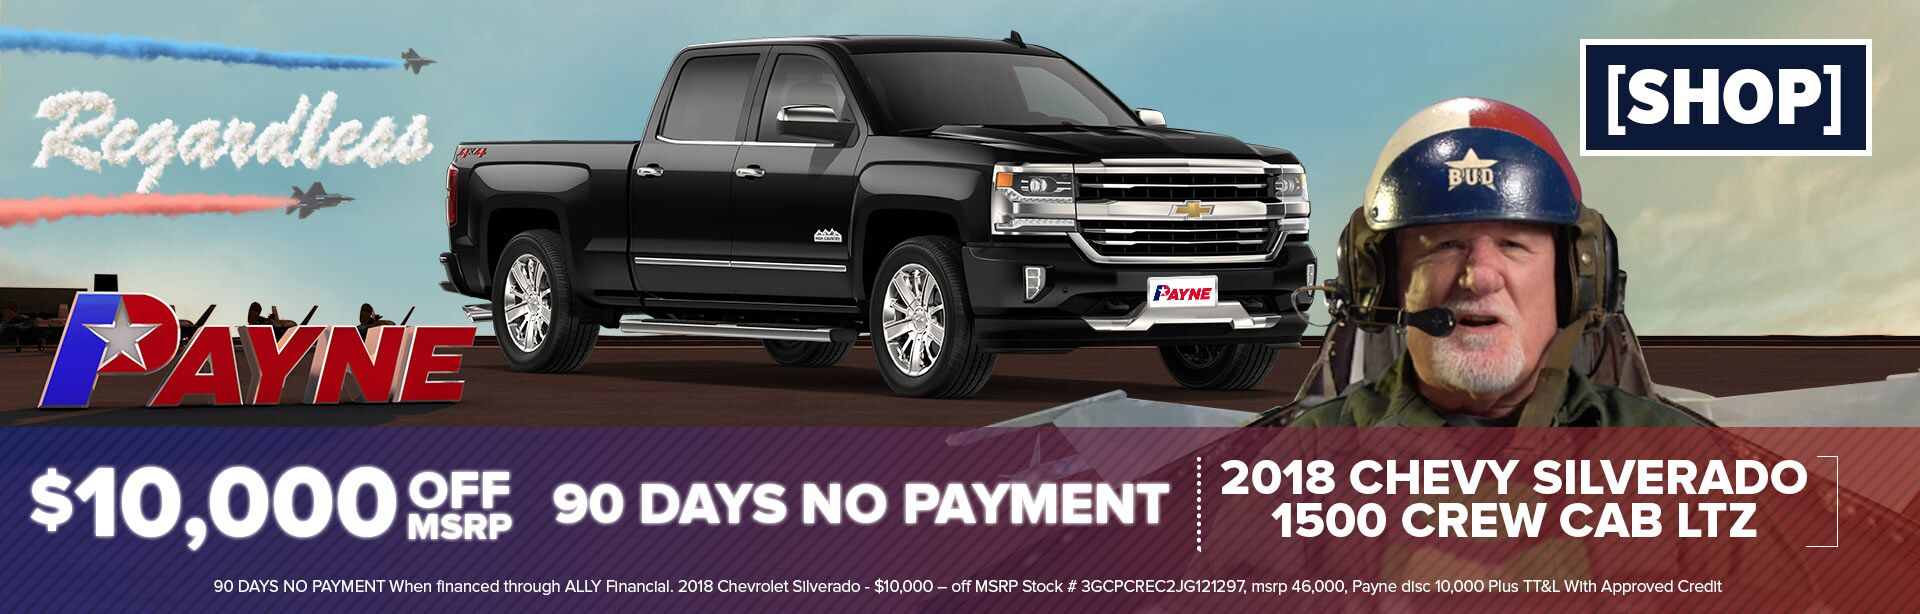 August 2018 commercial offer chevy